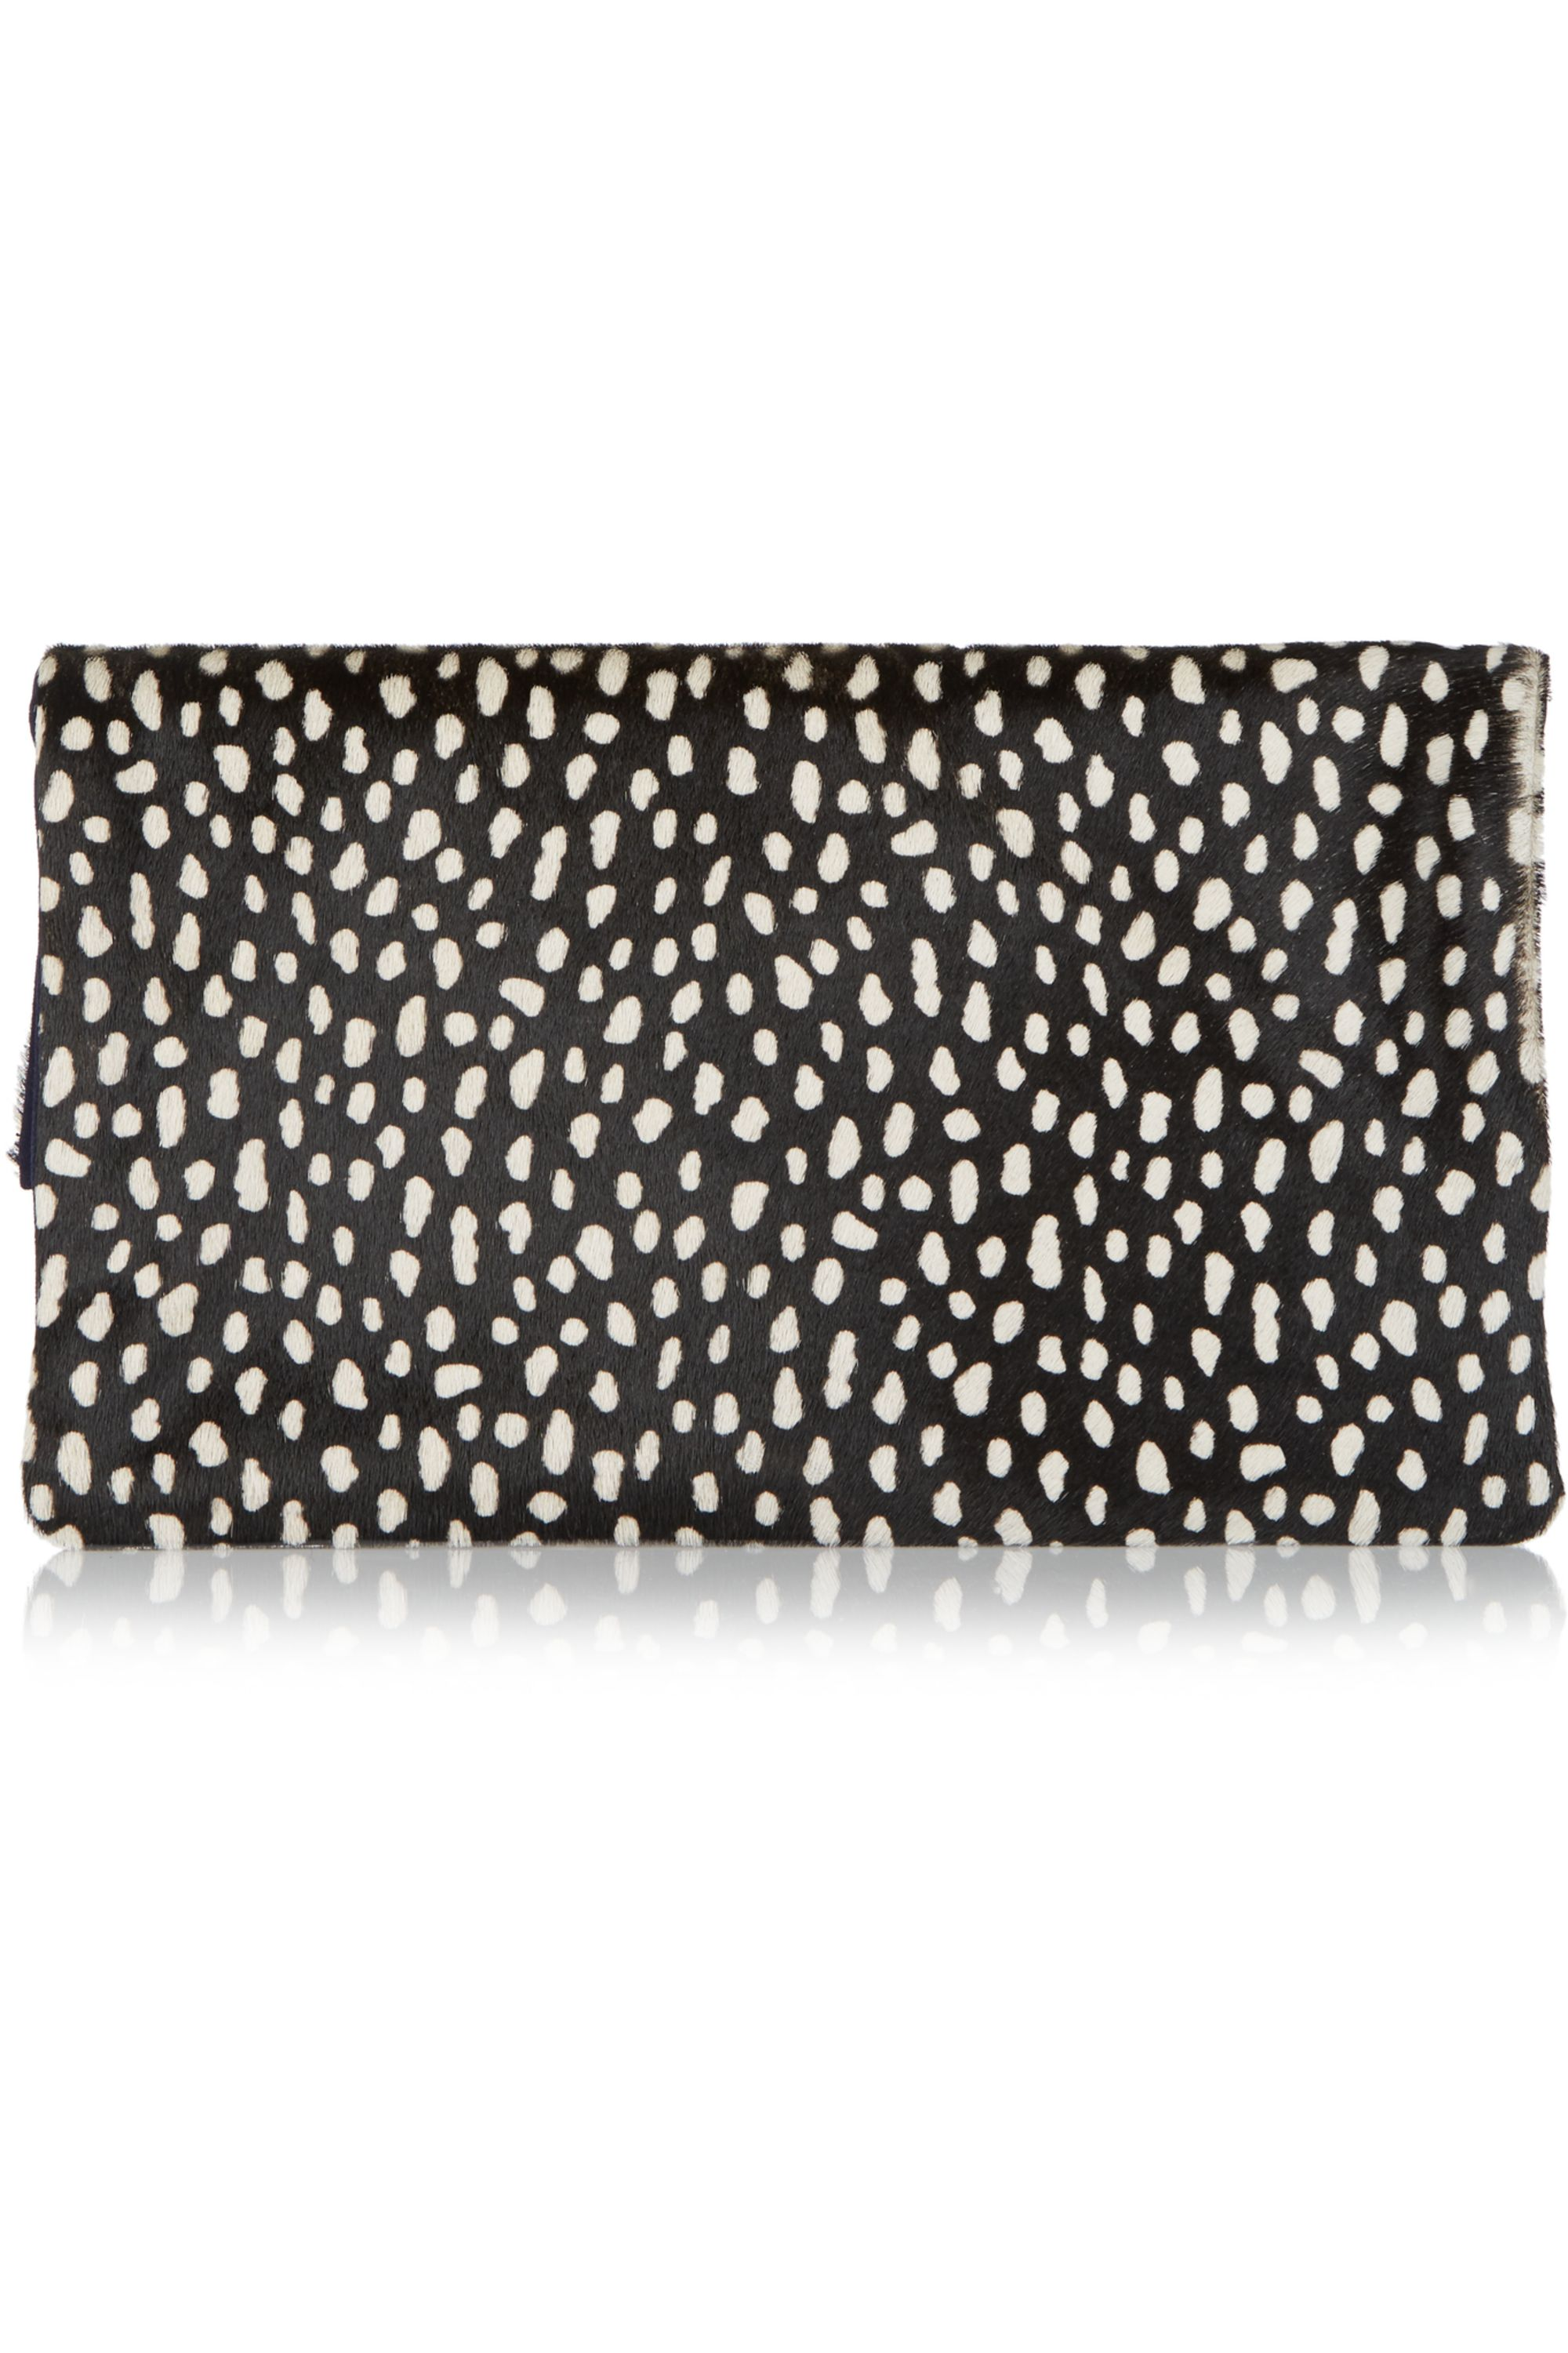 Clare V. Supreme fold-over printed calf hair and suede clutch